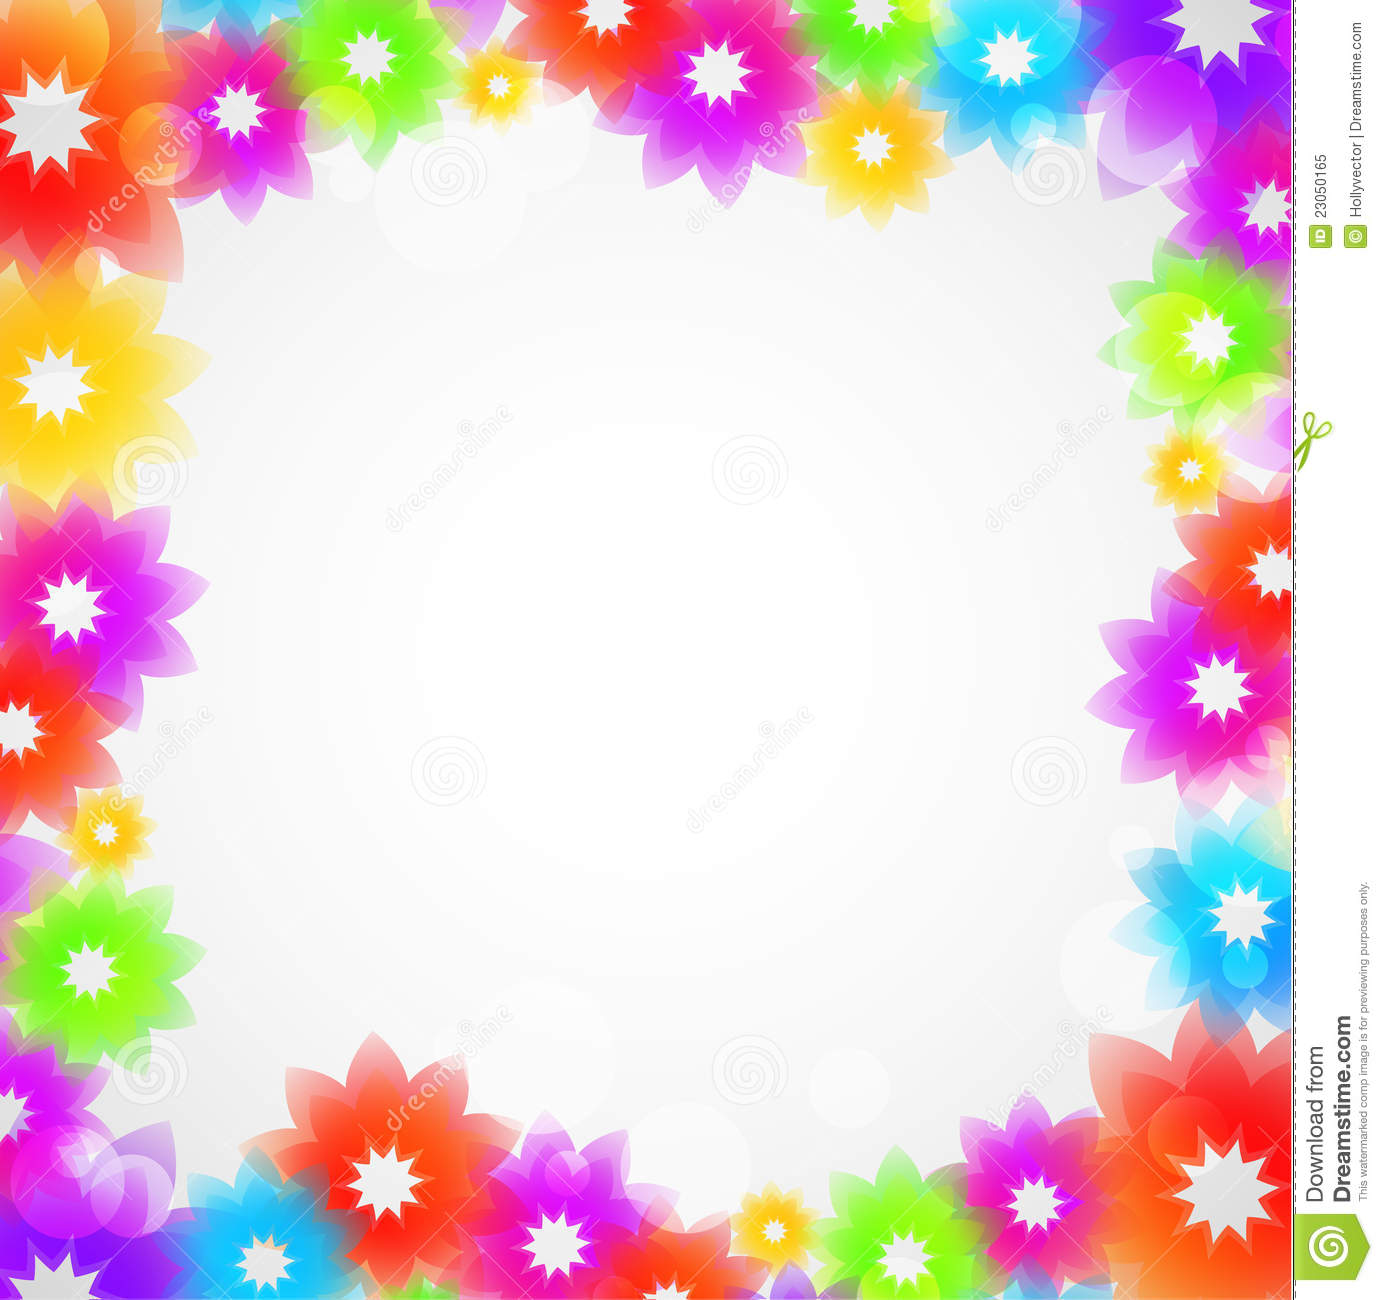 Colorful Flower Frame Royalty Free Stock Photo - Image: 23050165